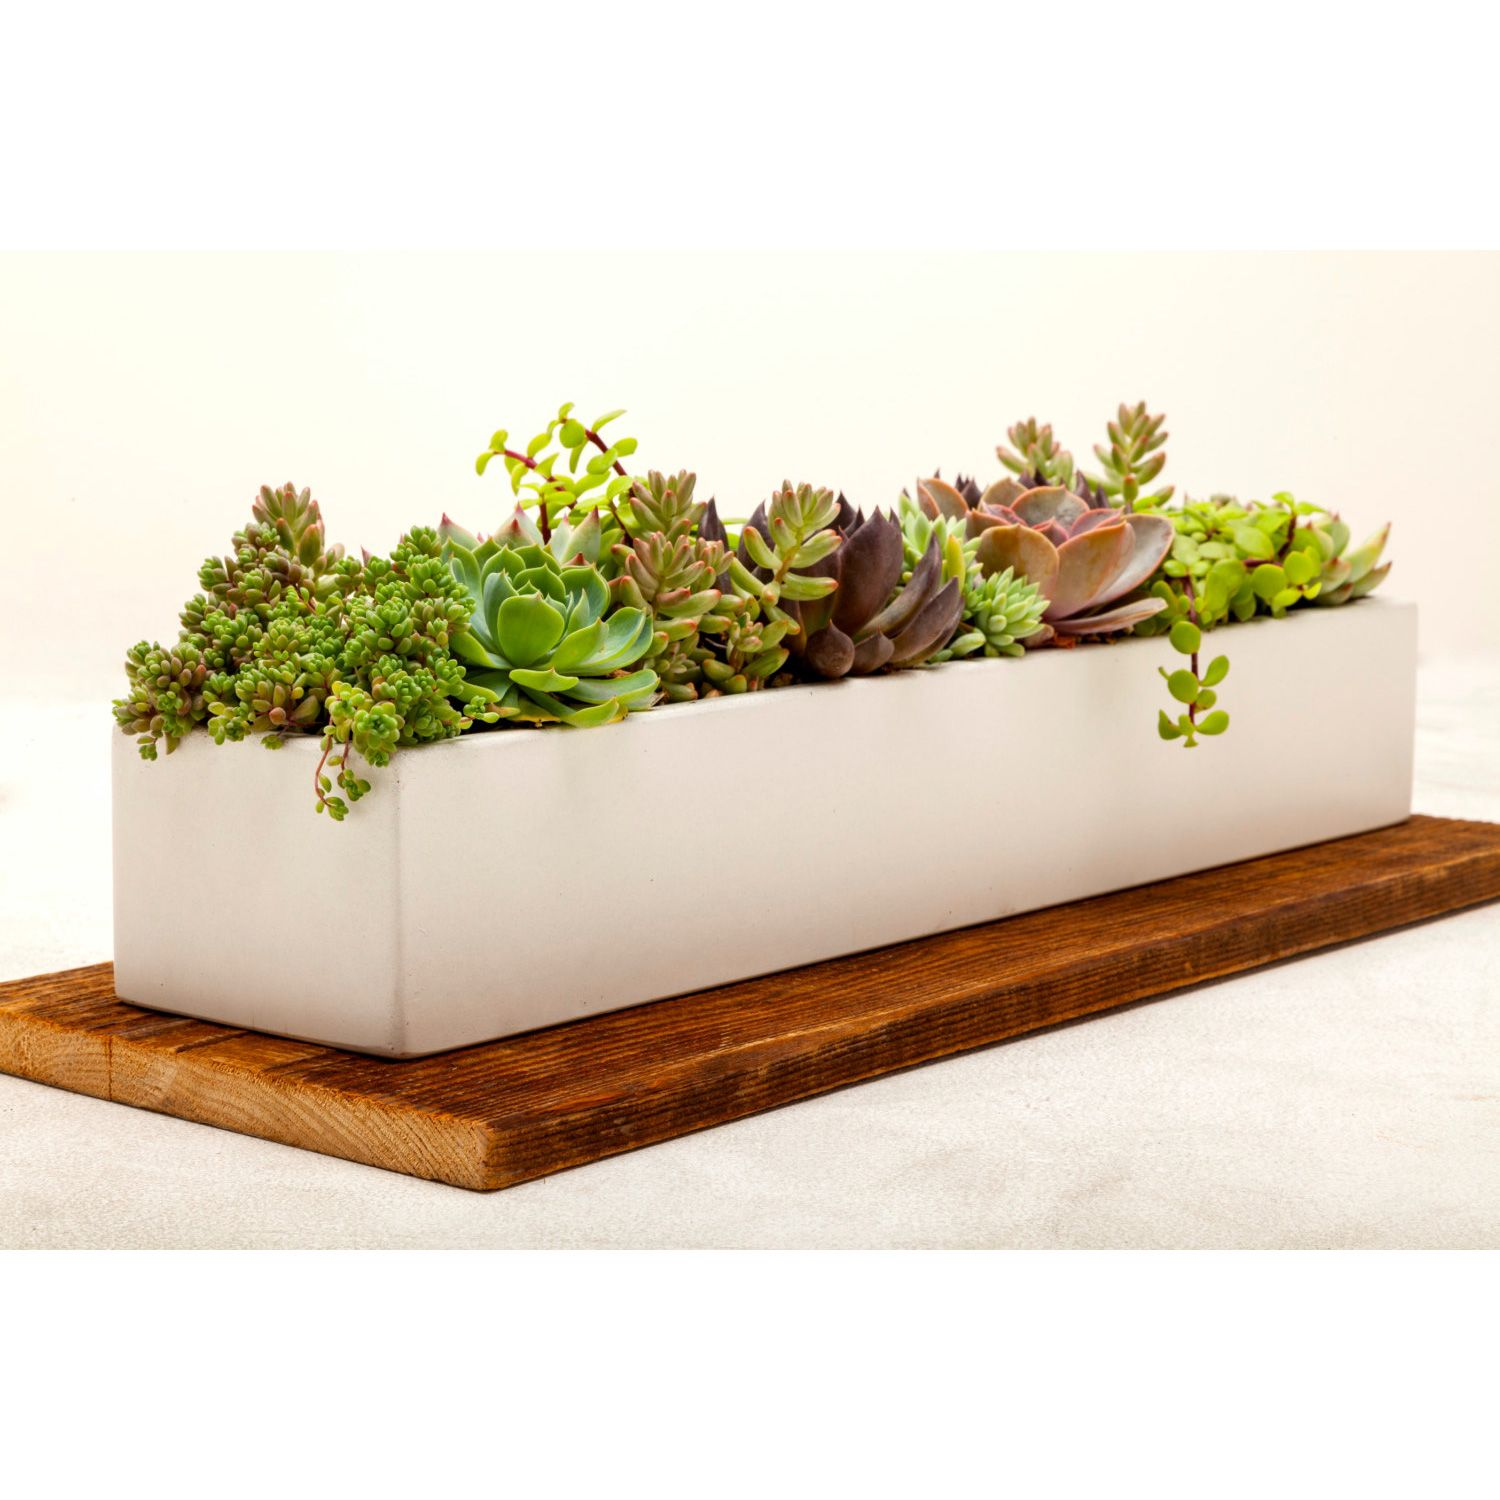 Low Rectangle Concrete Planter In White 24 Shopping